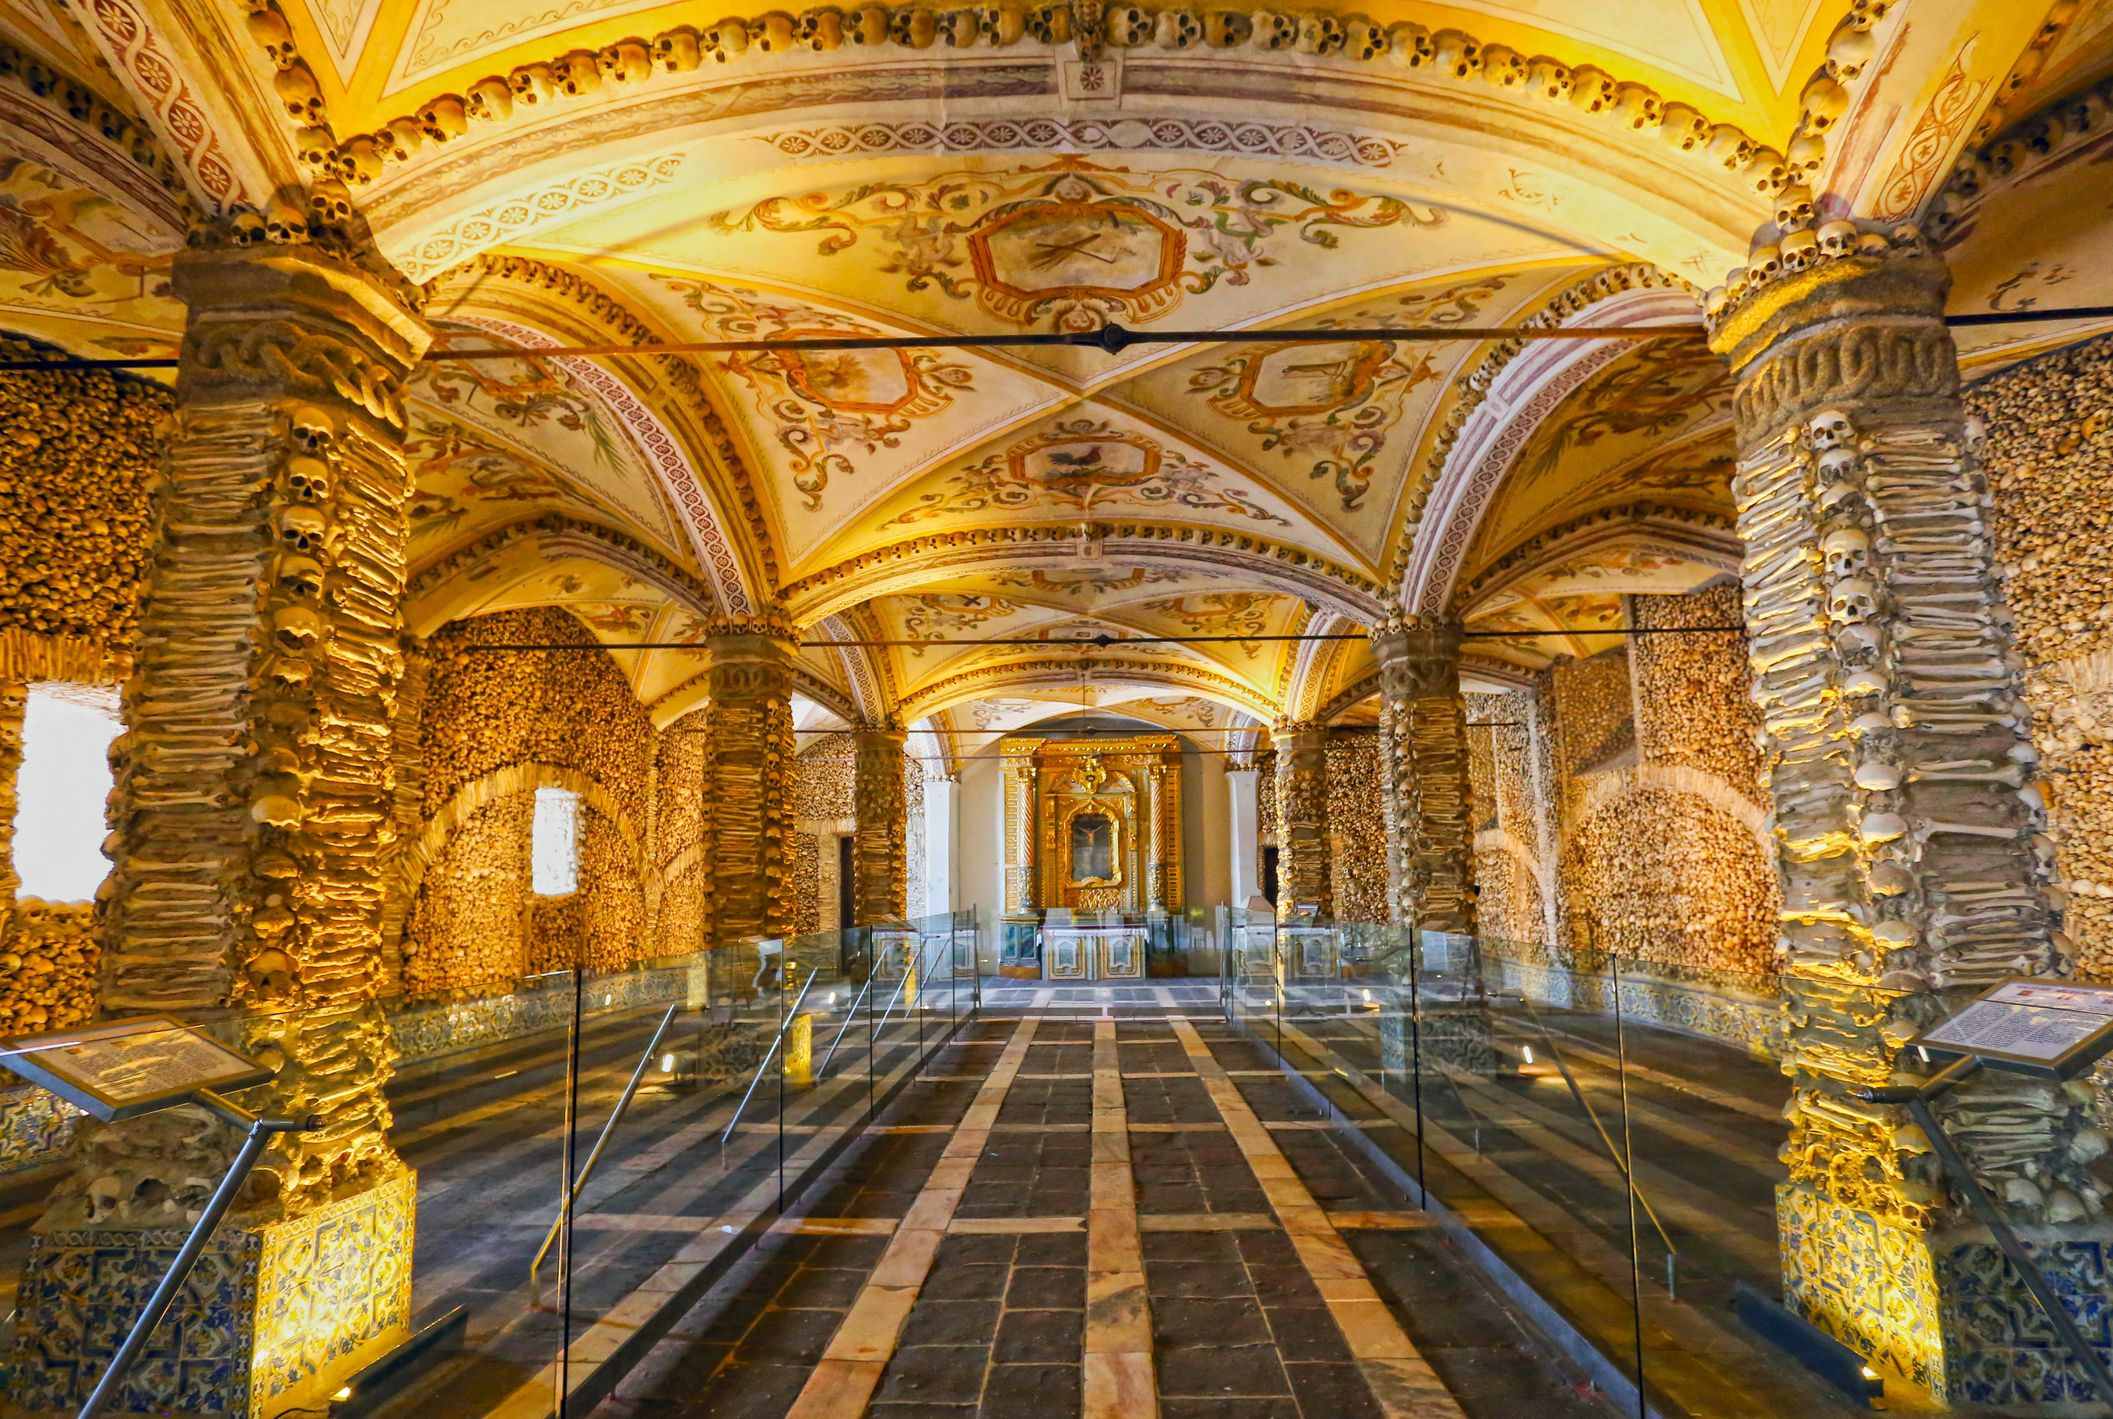 Portugal's Chapel of Bones: The Complete Guide